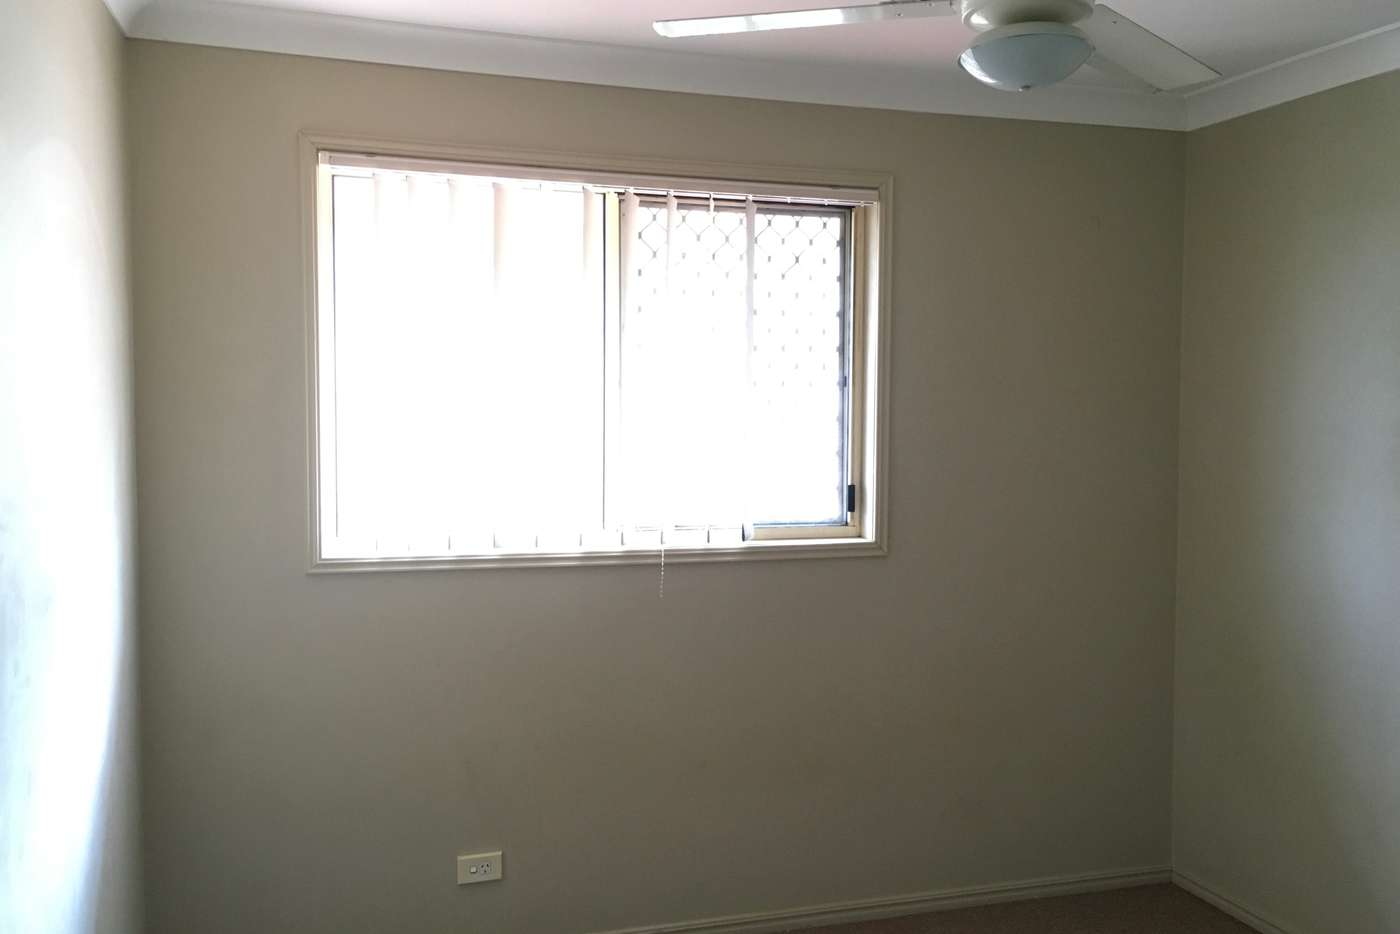 Seventh view of Homely townhouse listing, 113/17 Marlow Street, Woodridge QLD 4114